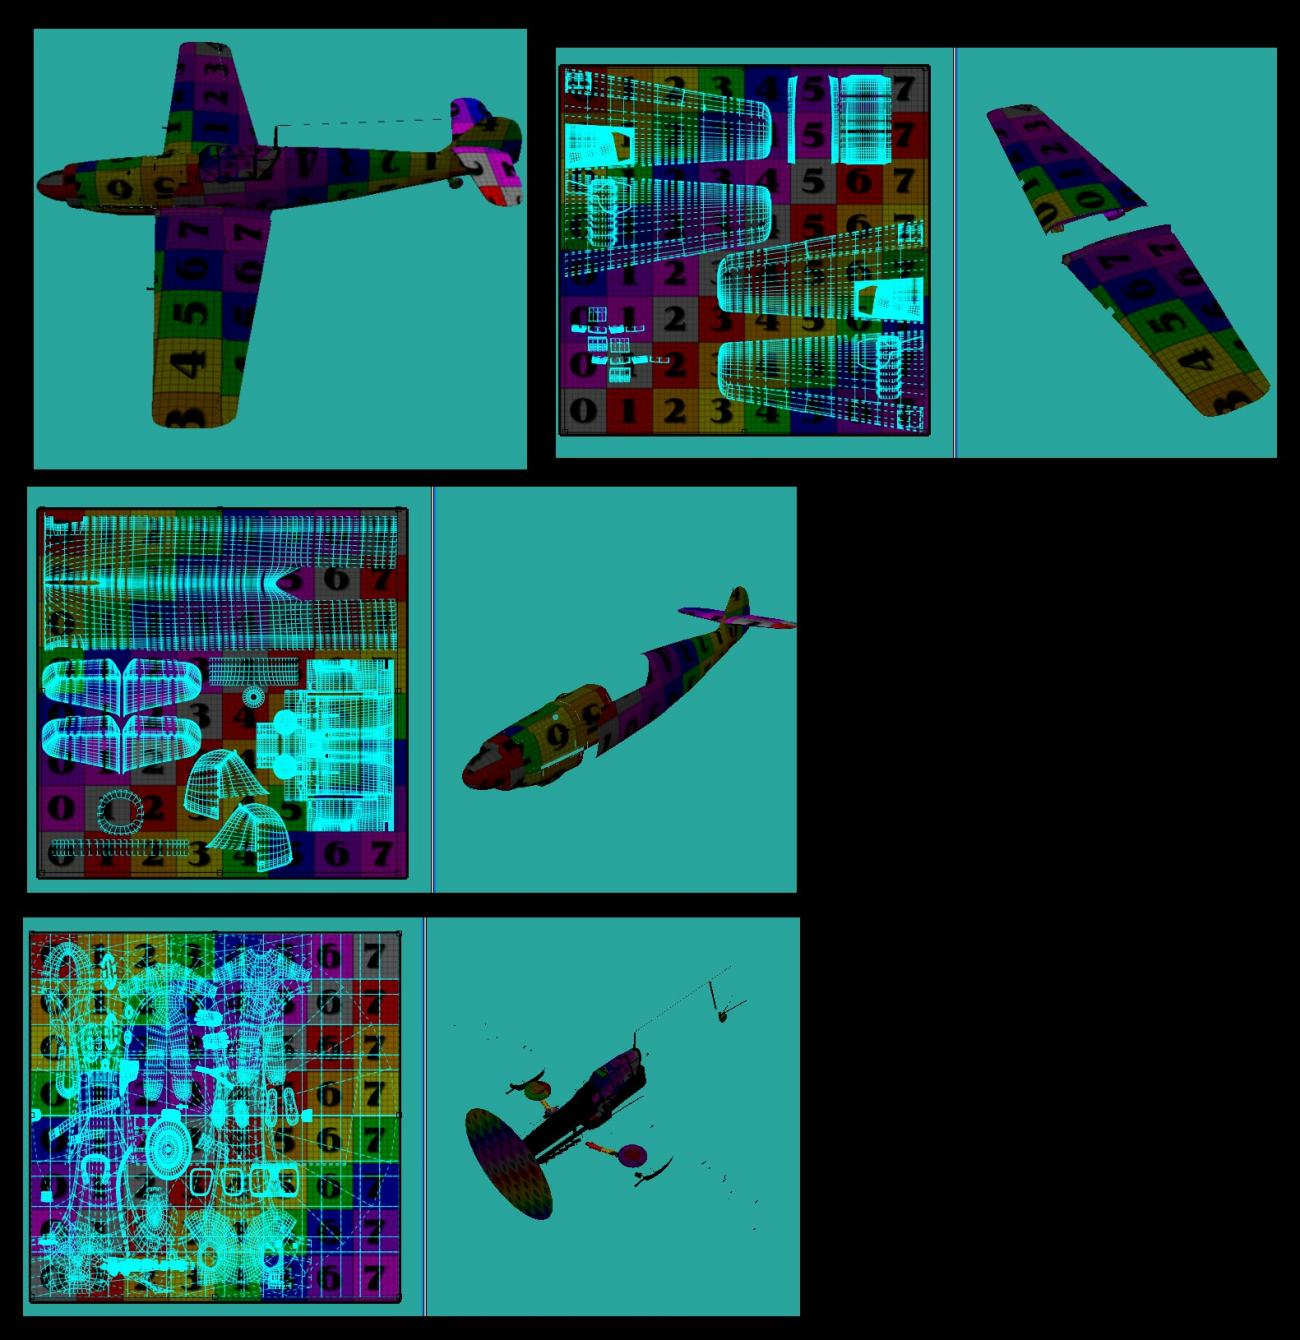 Mapping the S-199 mods to Bazze's Me-109 by UVDan